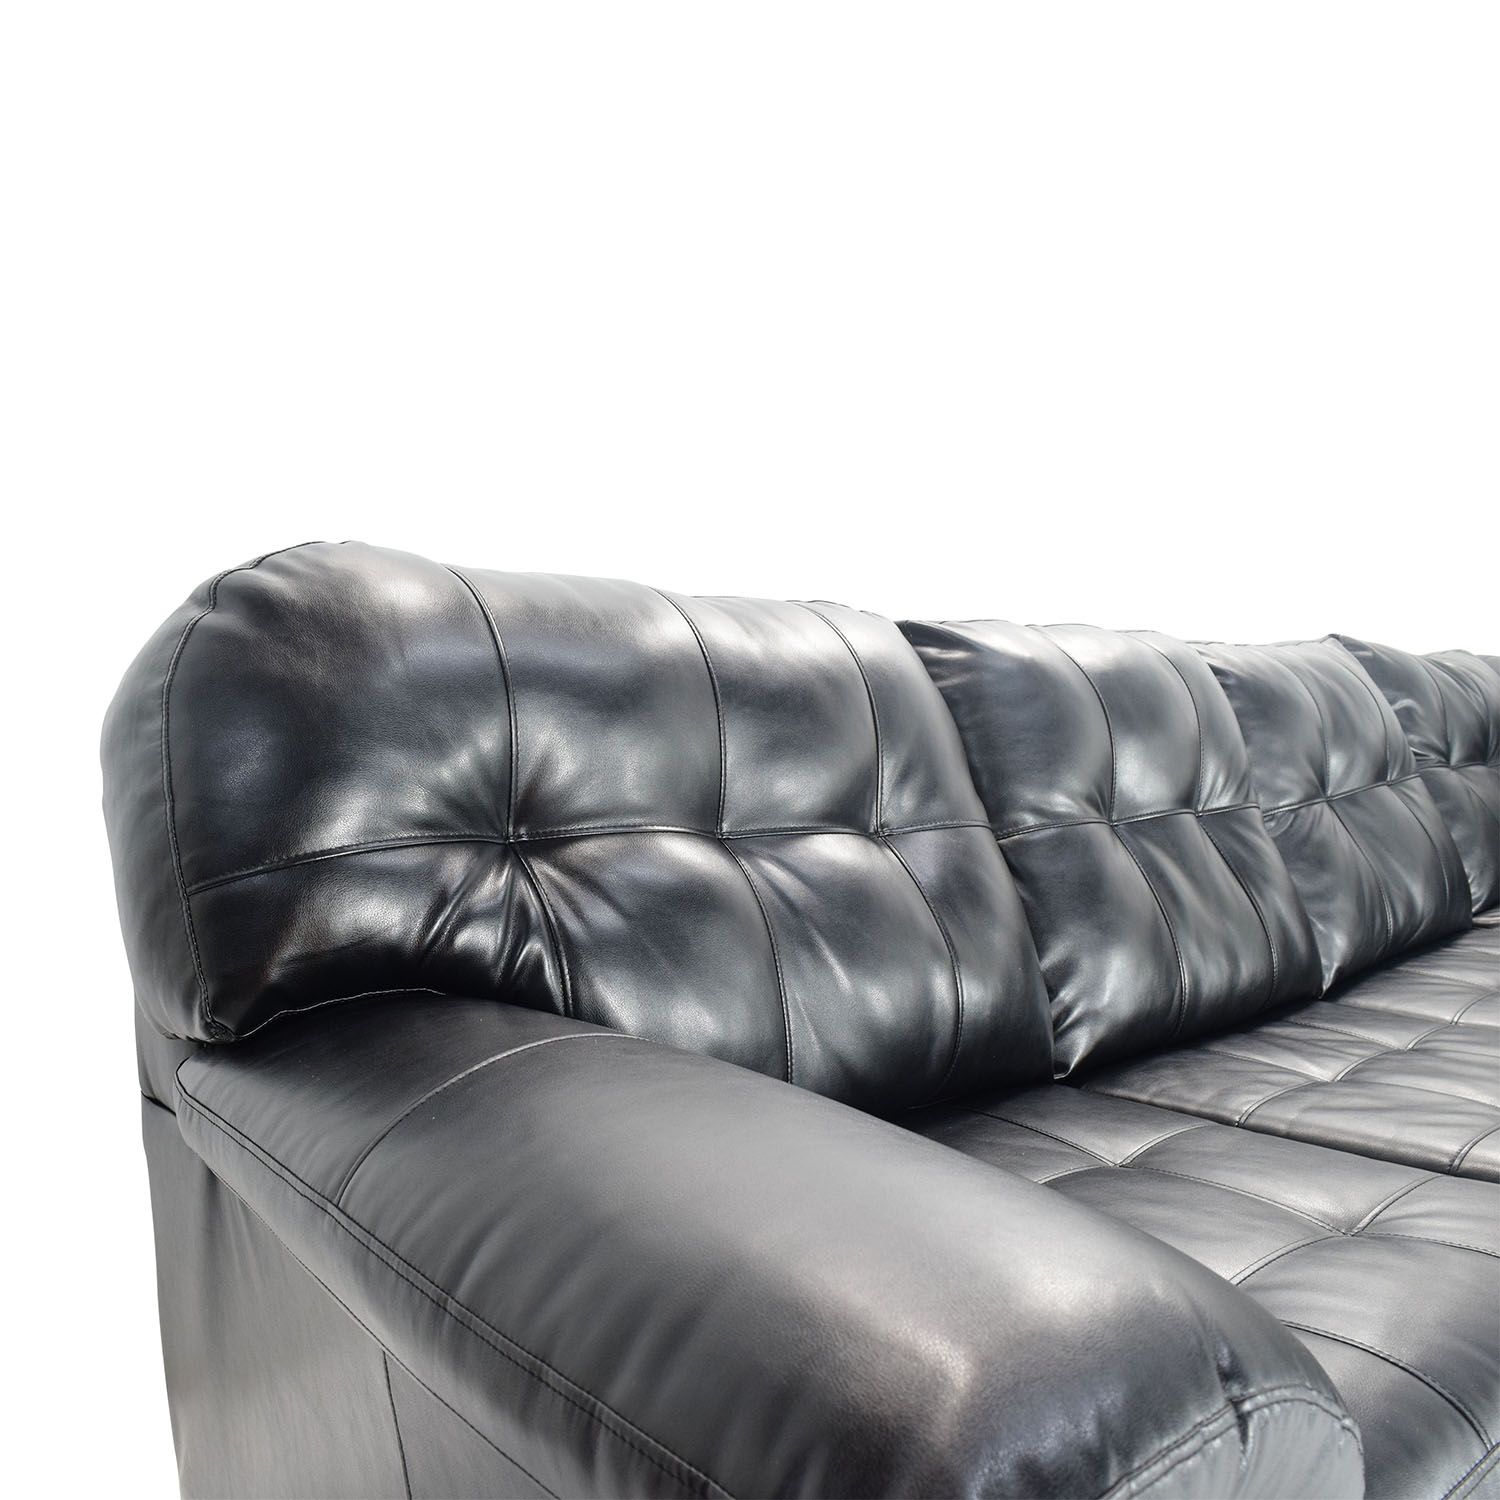 sectional sofas recliners the sofa bed store 51% off - bobs furniture black faux leather /